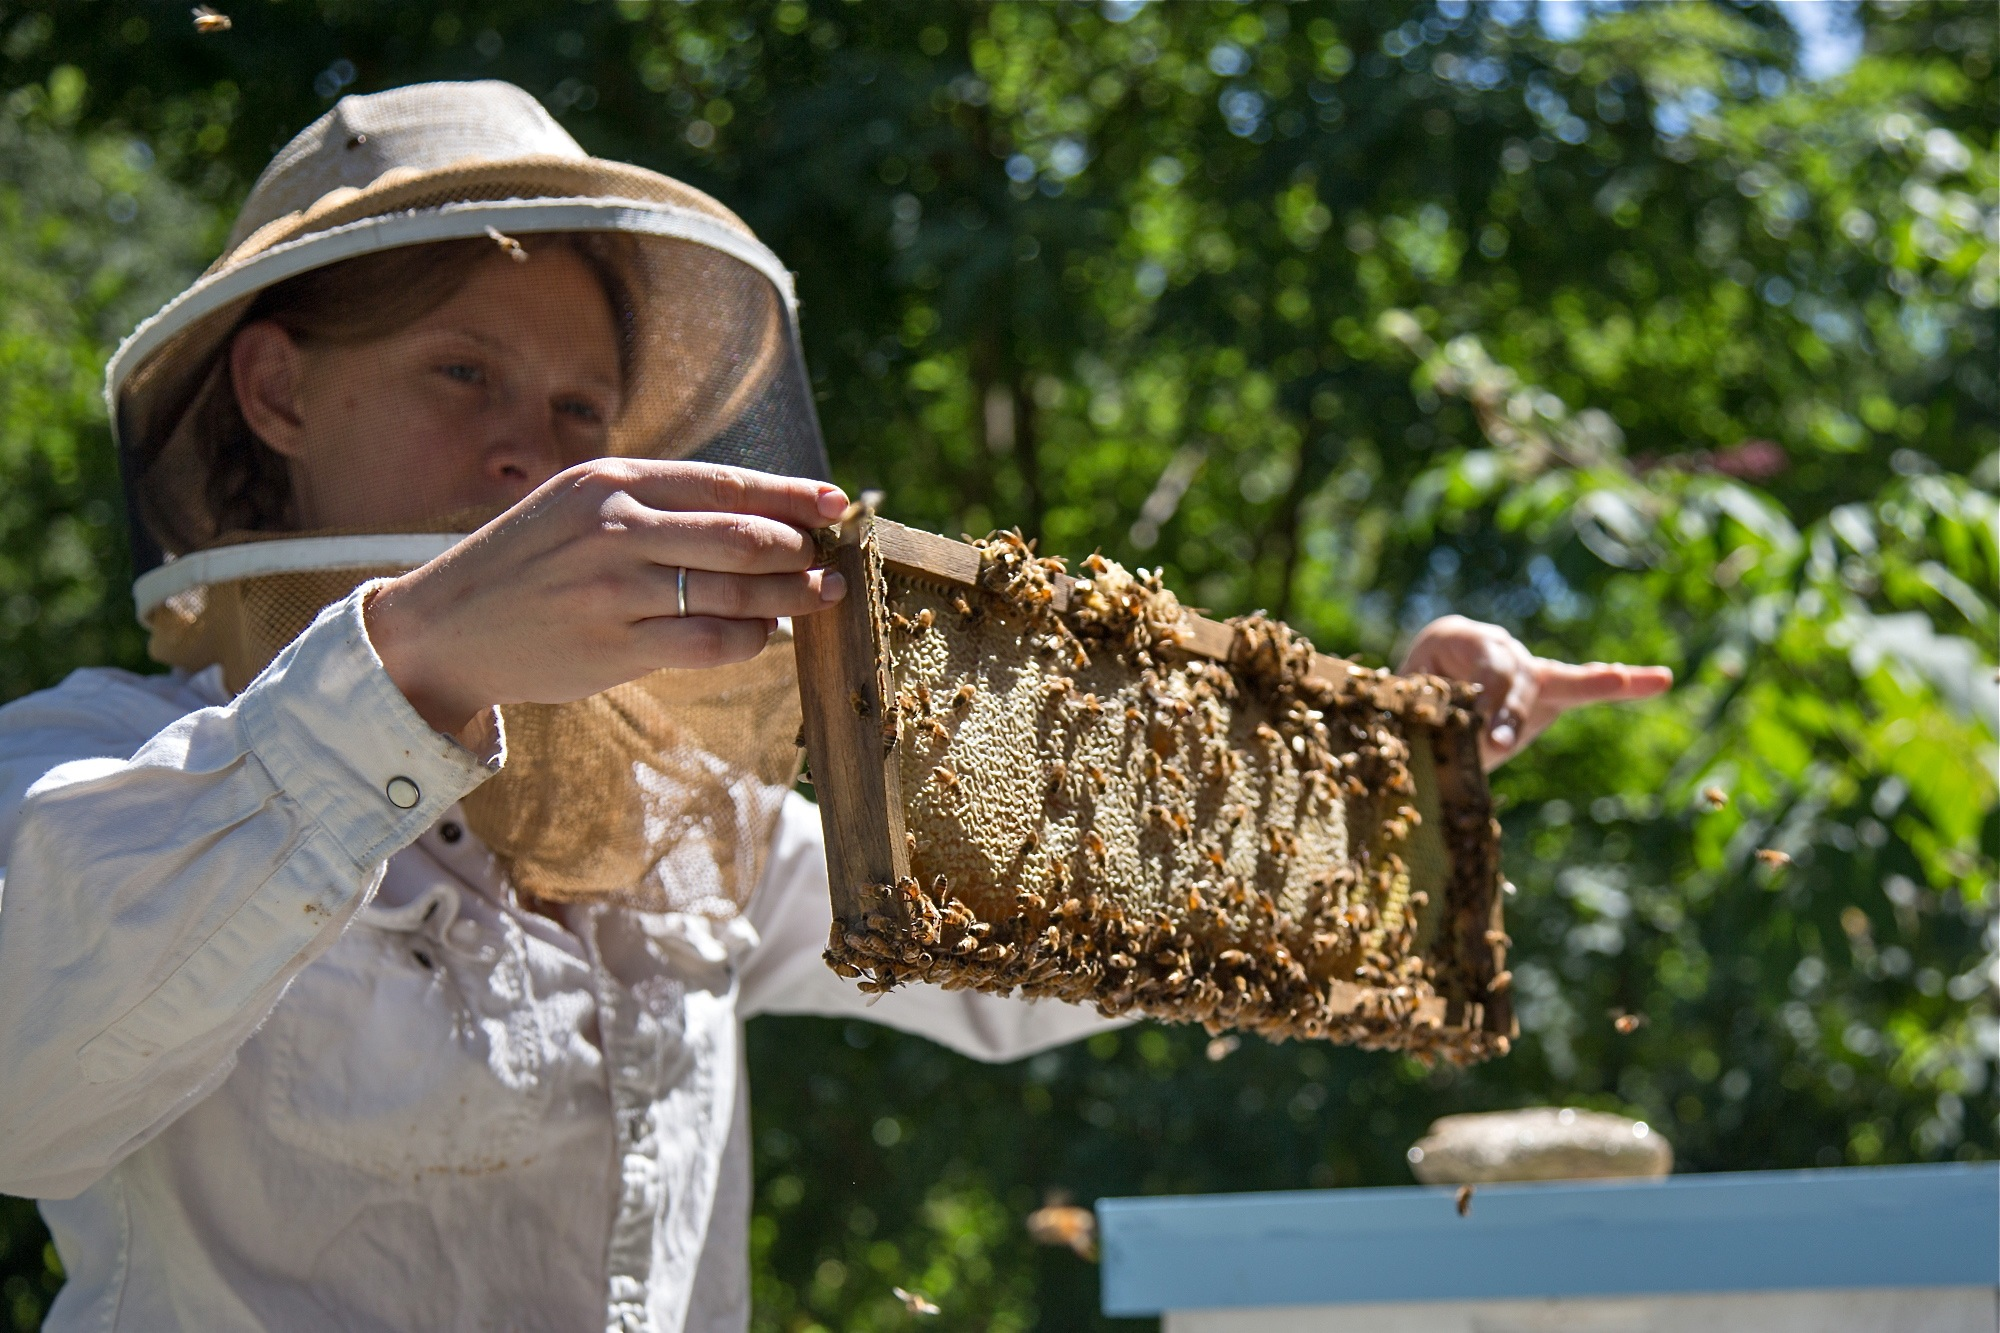 Get To Know The Beekeeping Scene At The Philly Honey Festival Whyy